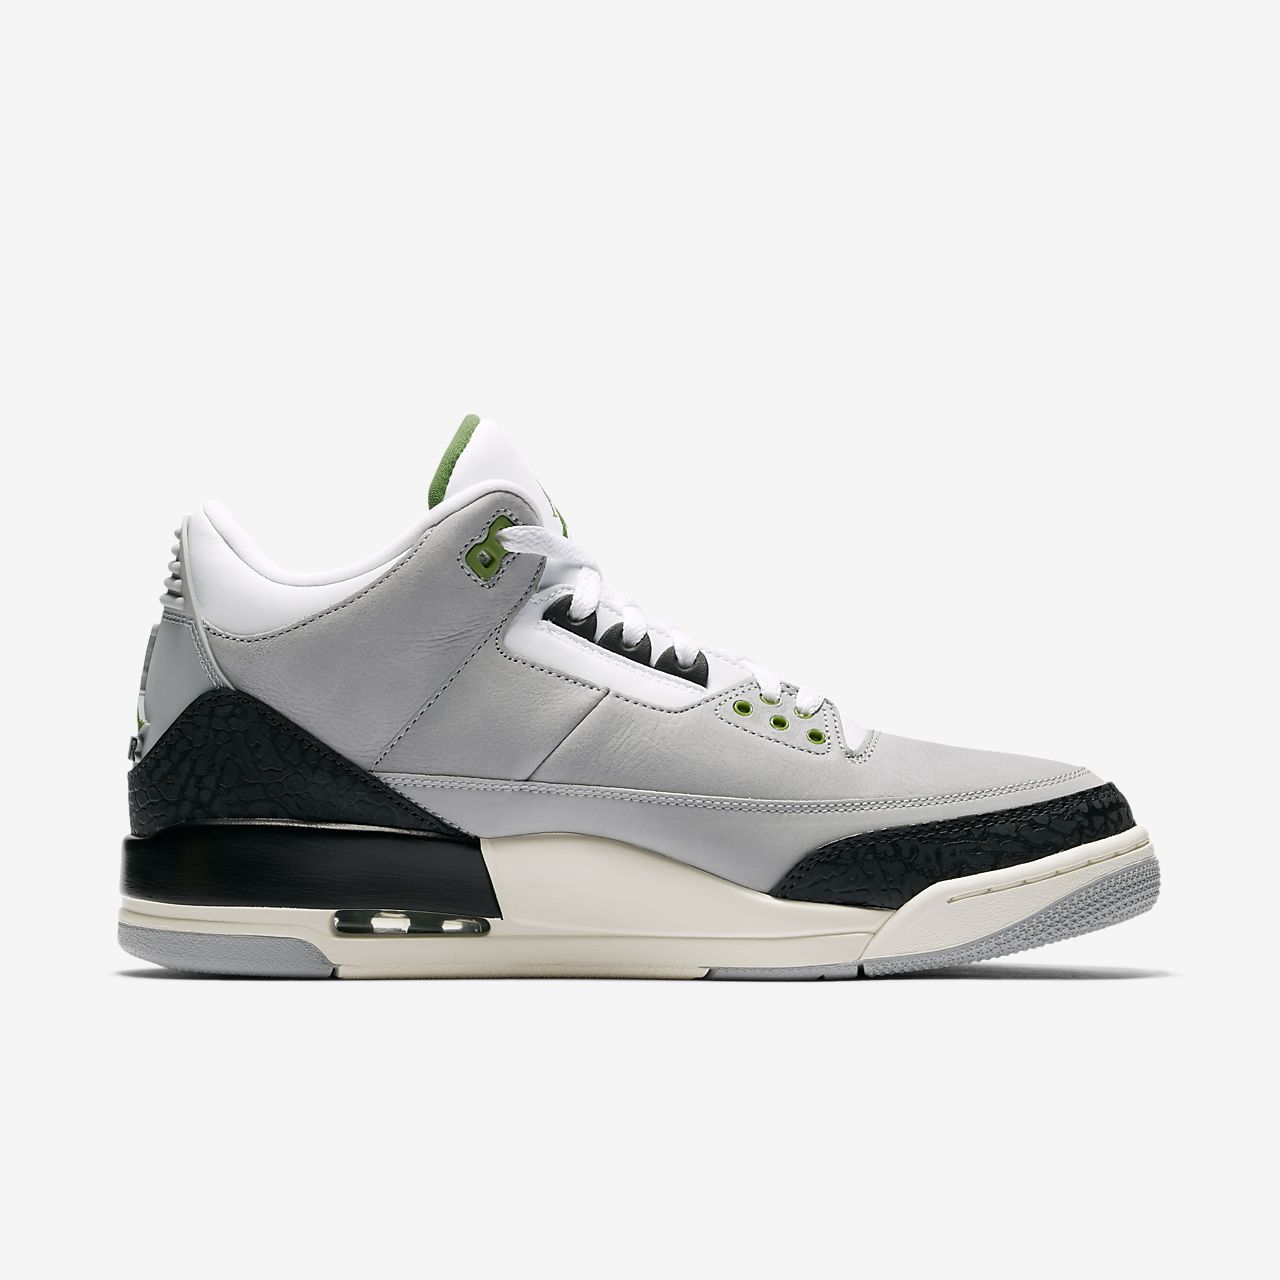 52d4114258af Air Jordan 3 Retro Men s Shoe. Nike.com HR